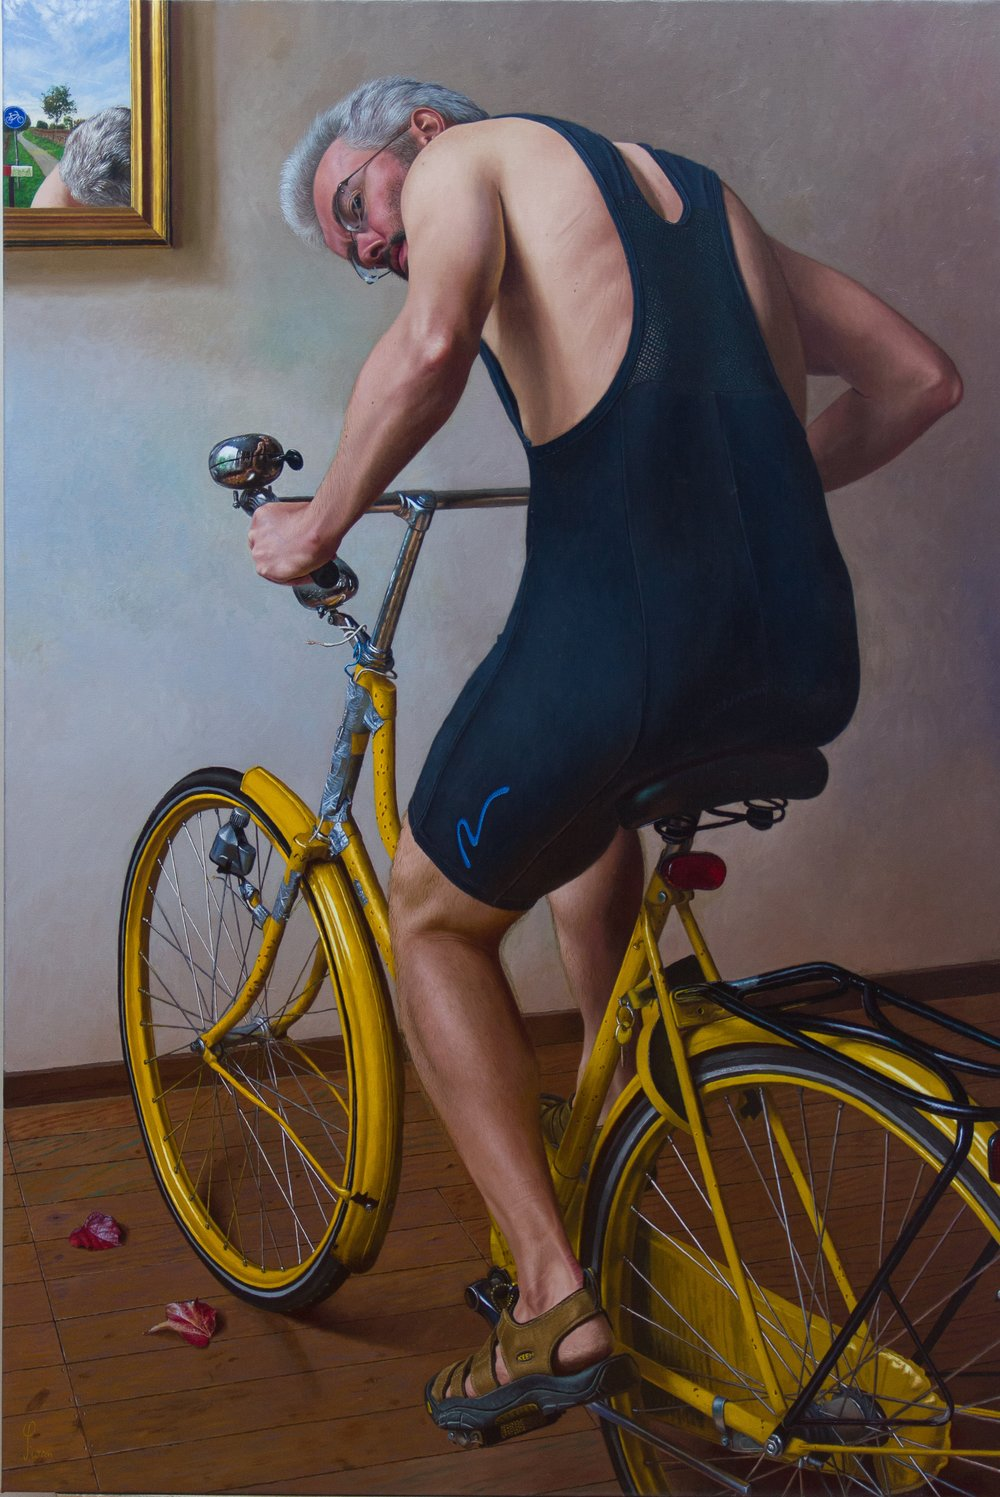 Wim Heldens  |   Bicycle     |  Oil on canvas  |  59 x 39 ¼ inches or 150 x 100 cm